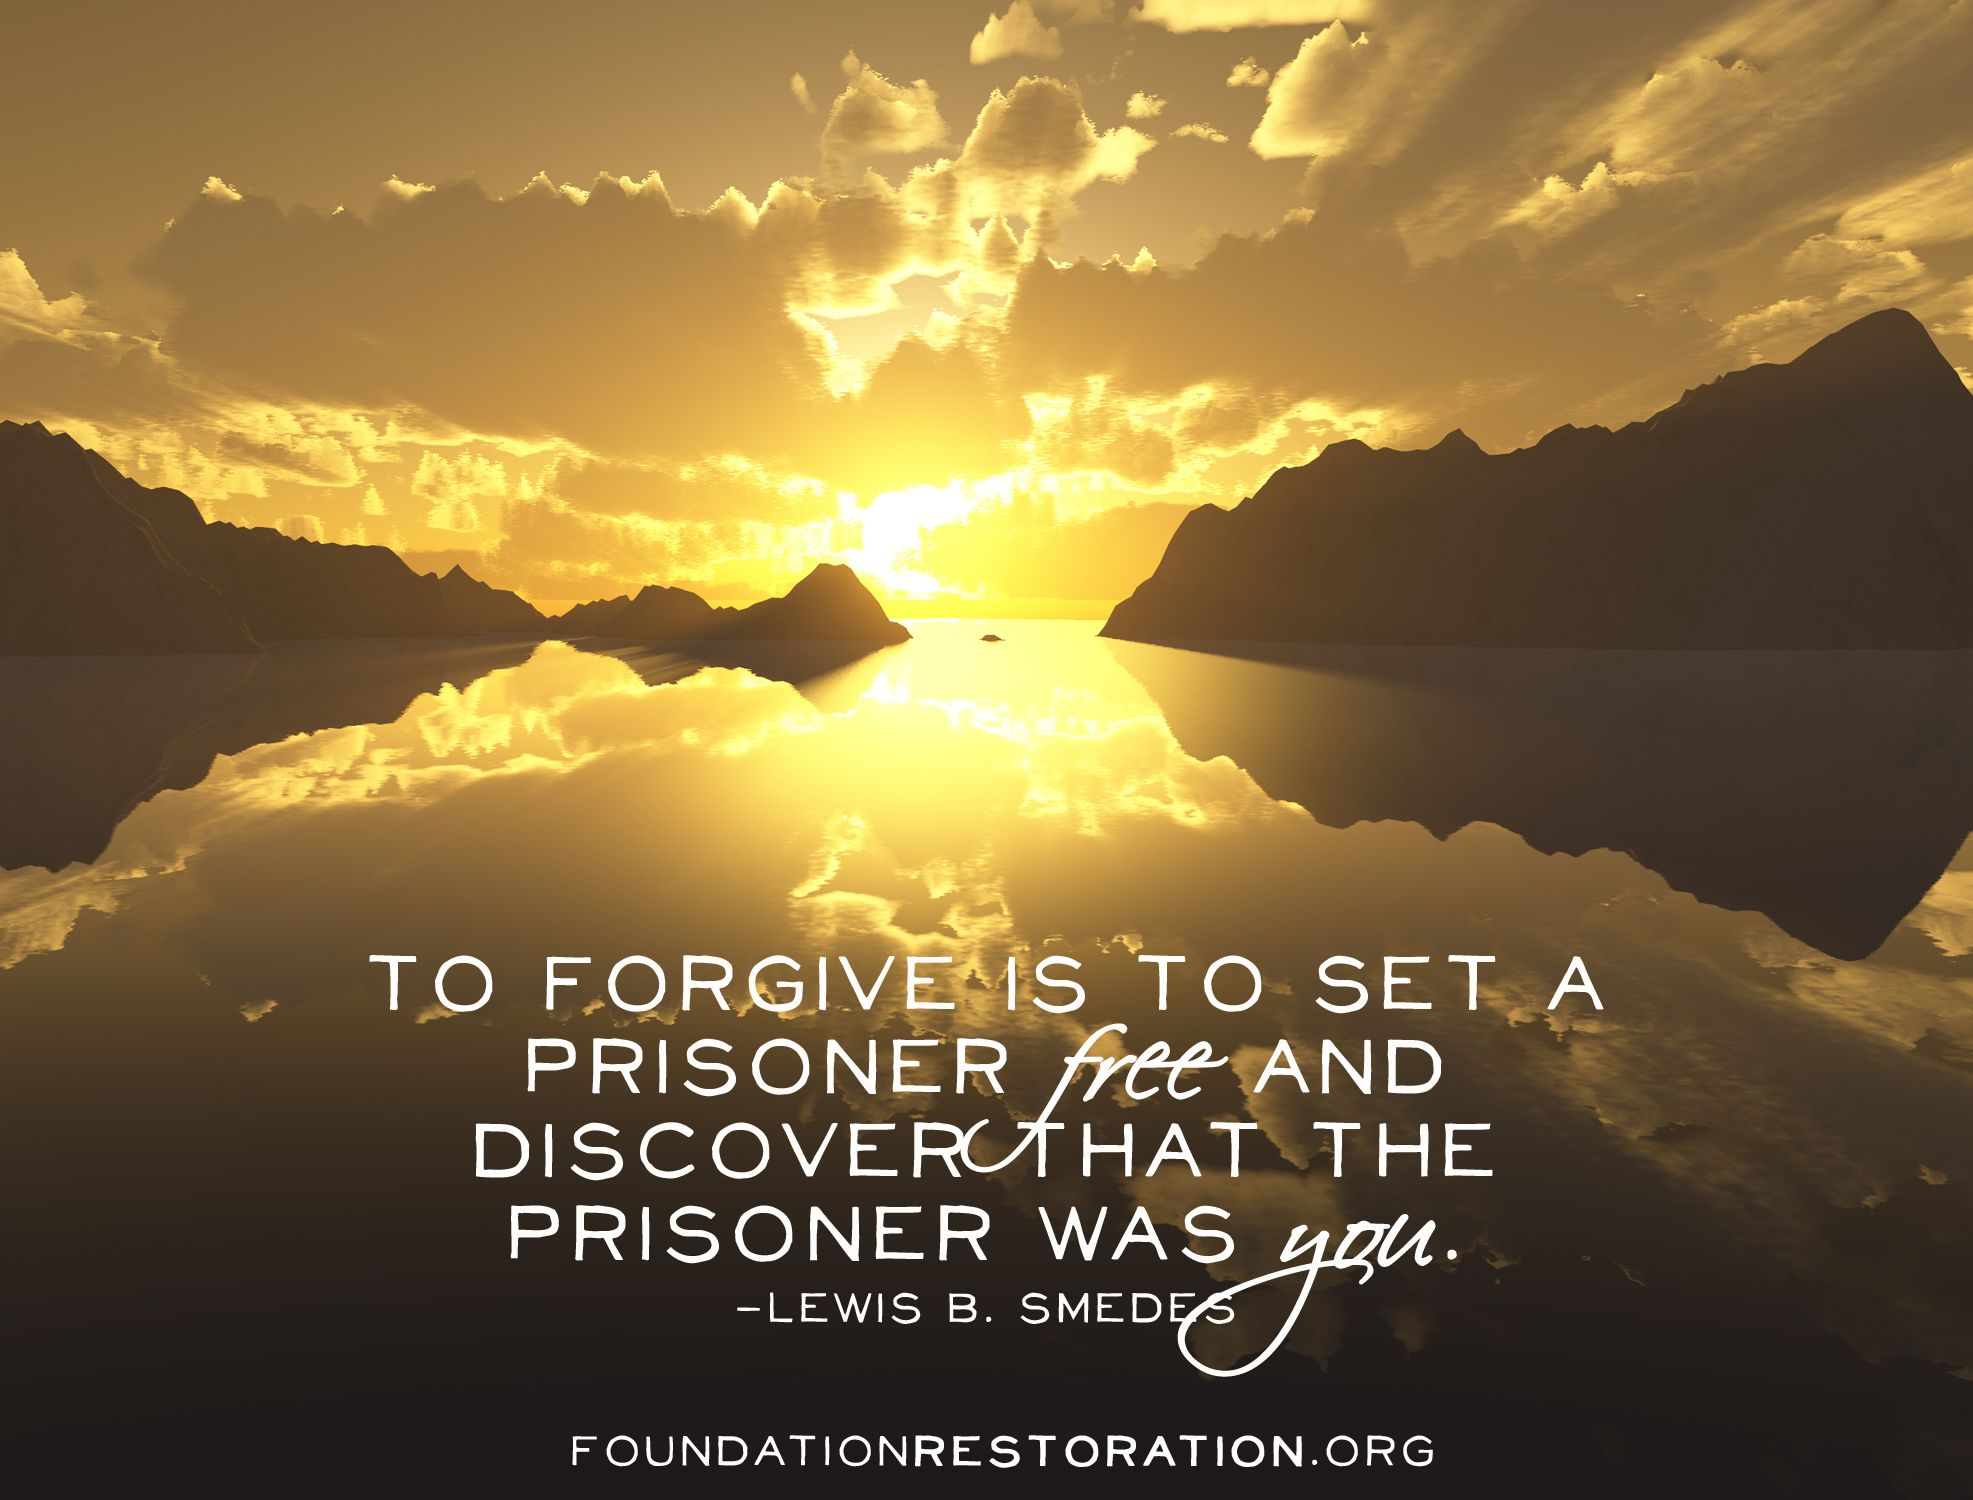 To Forgive Is To Set A Prisoner Free And Discover That The Prisoner